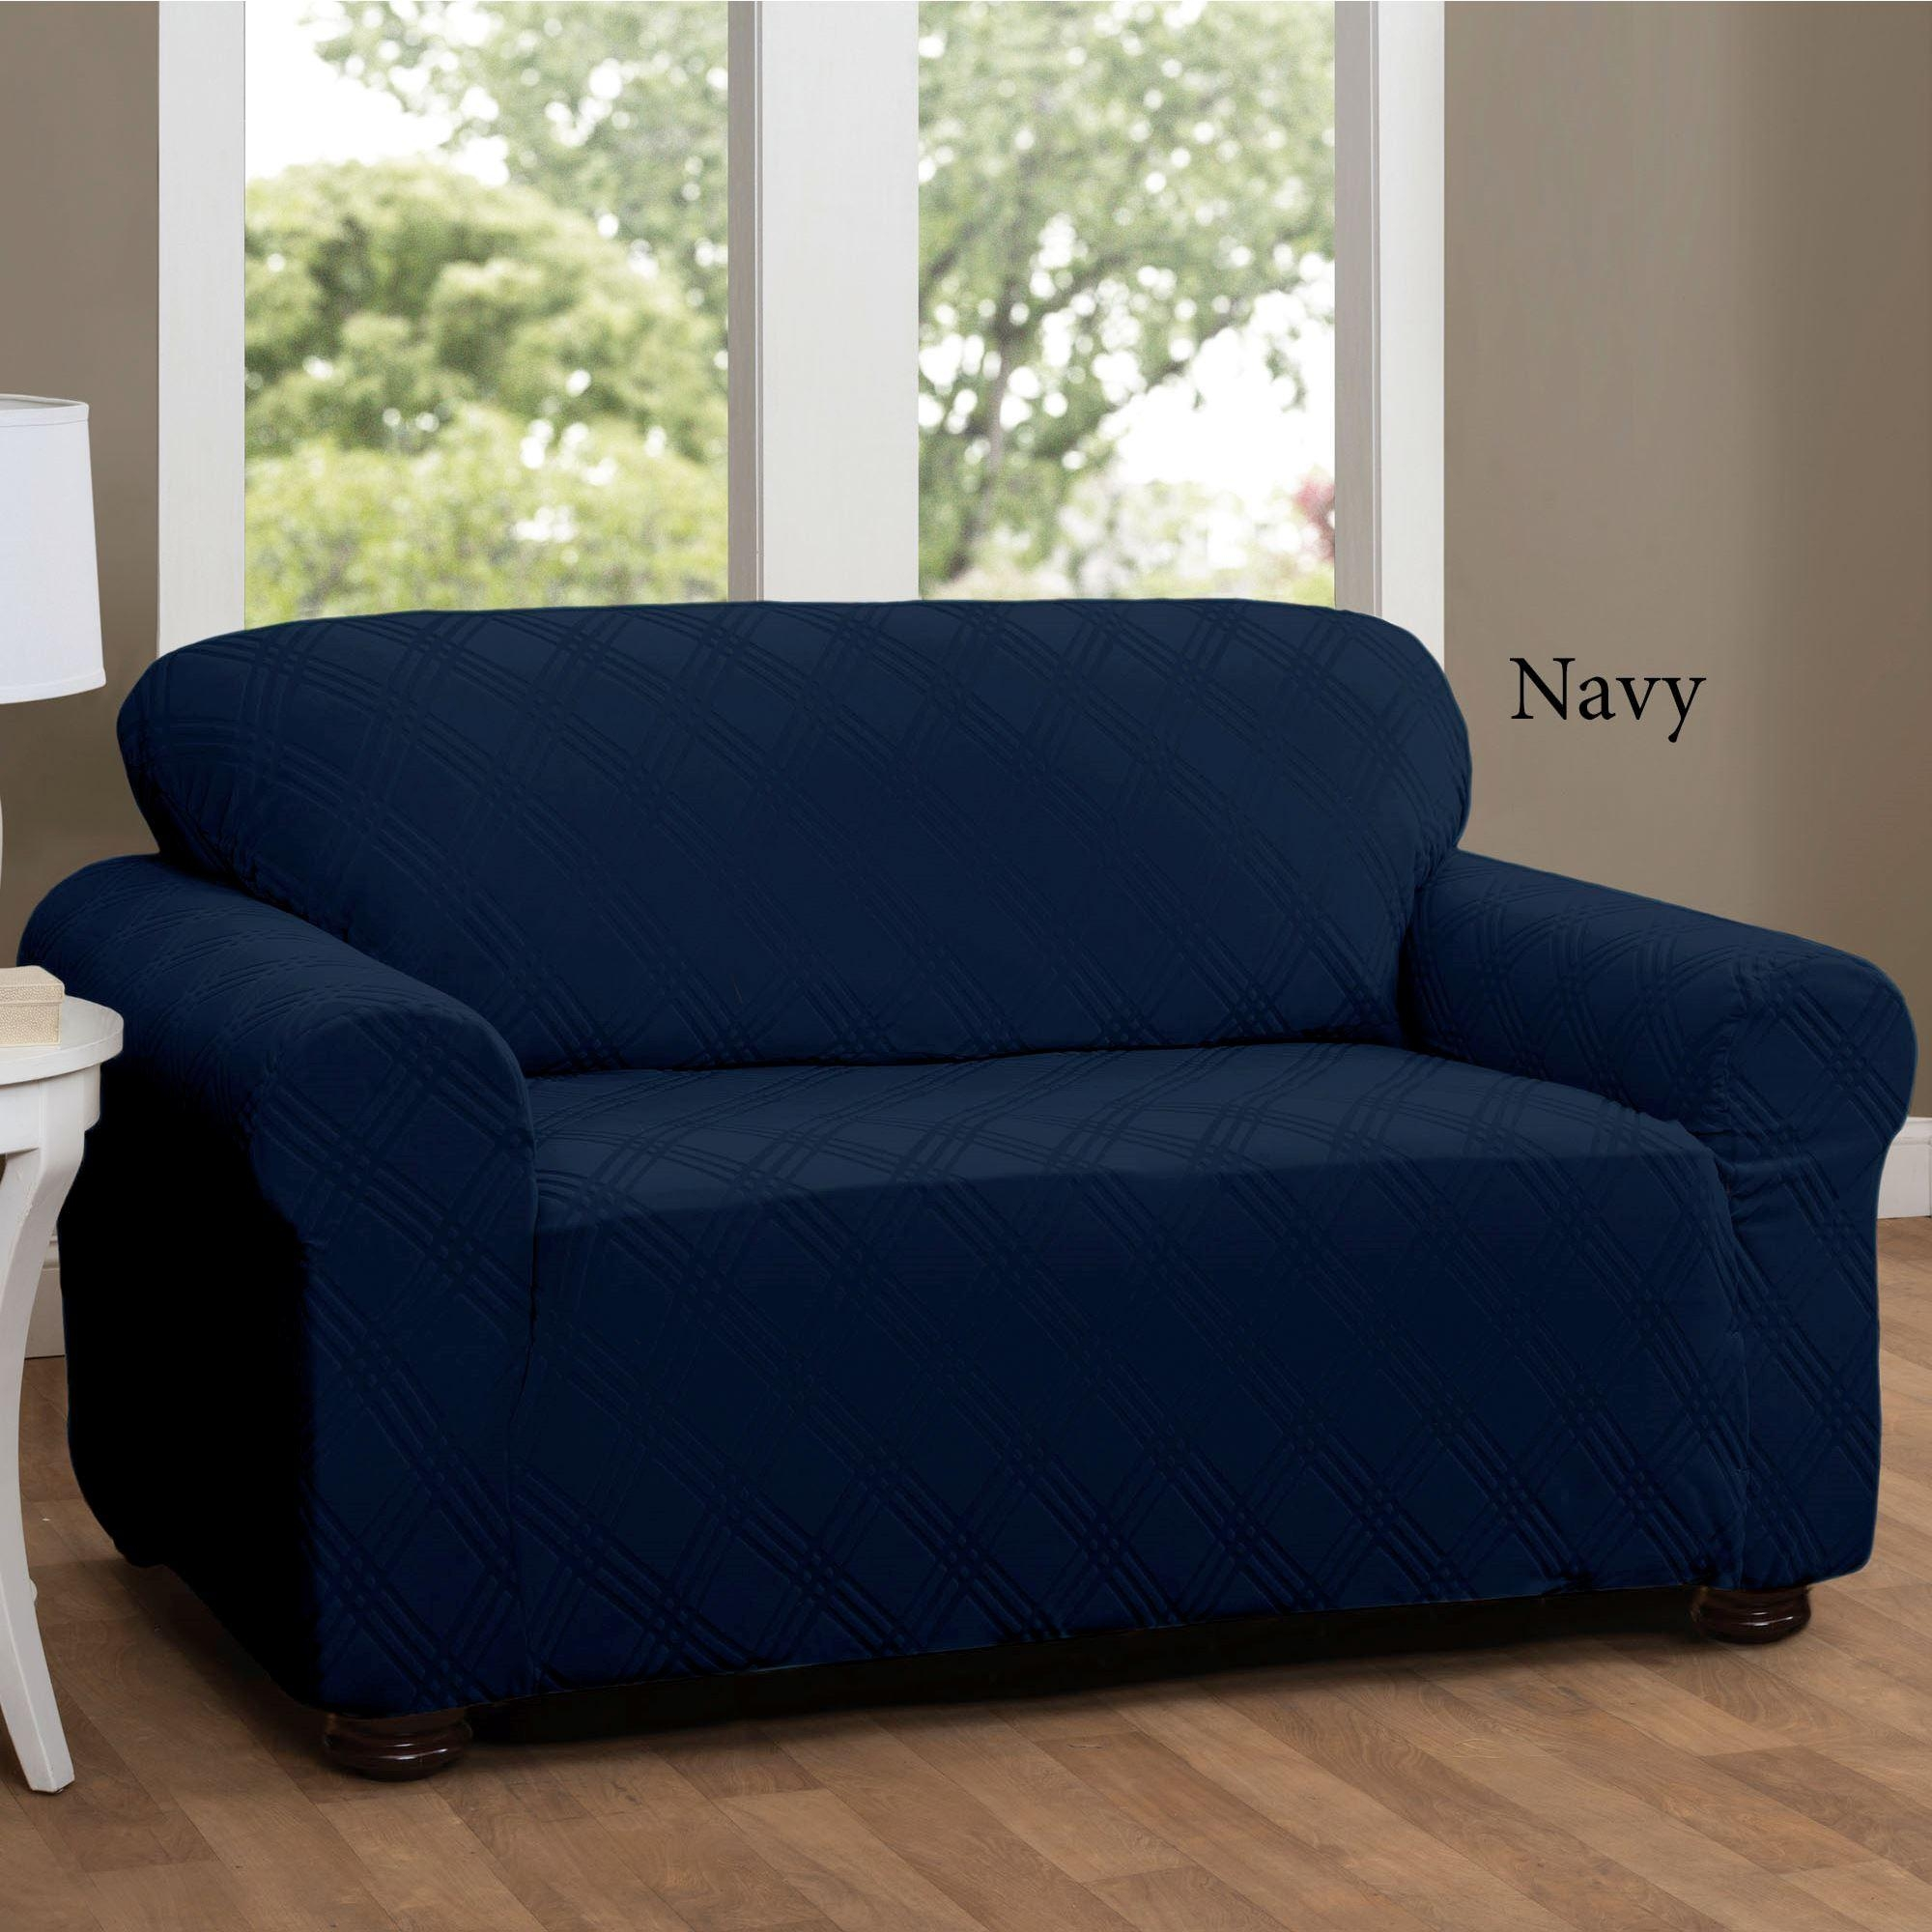 navy dining room chair covers hinkle company 20 inspirations blue slipcovers sofa ideas